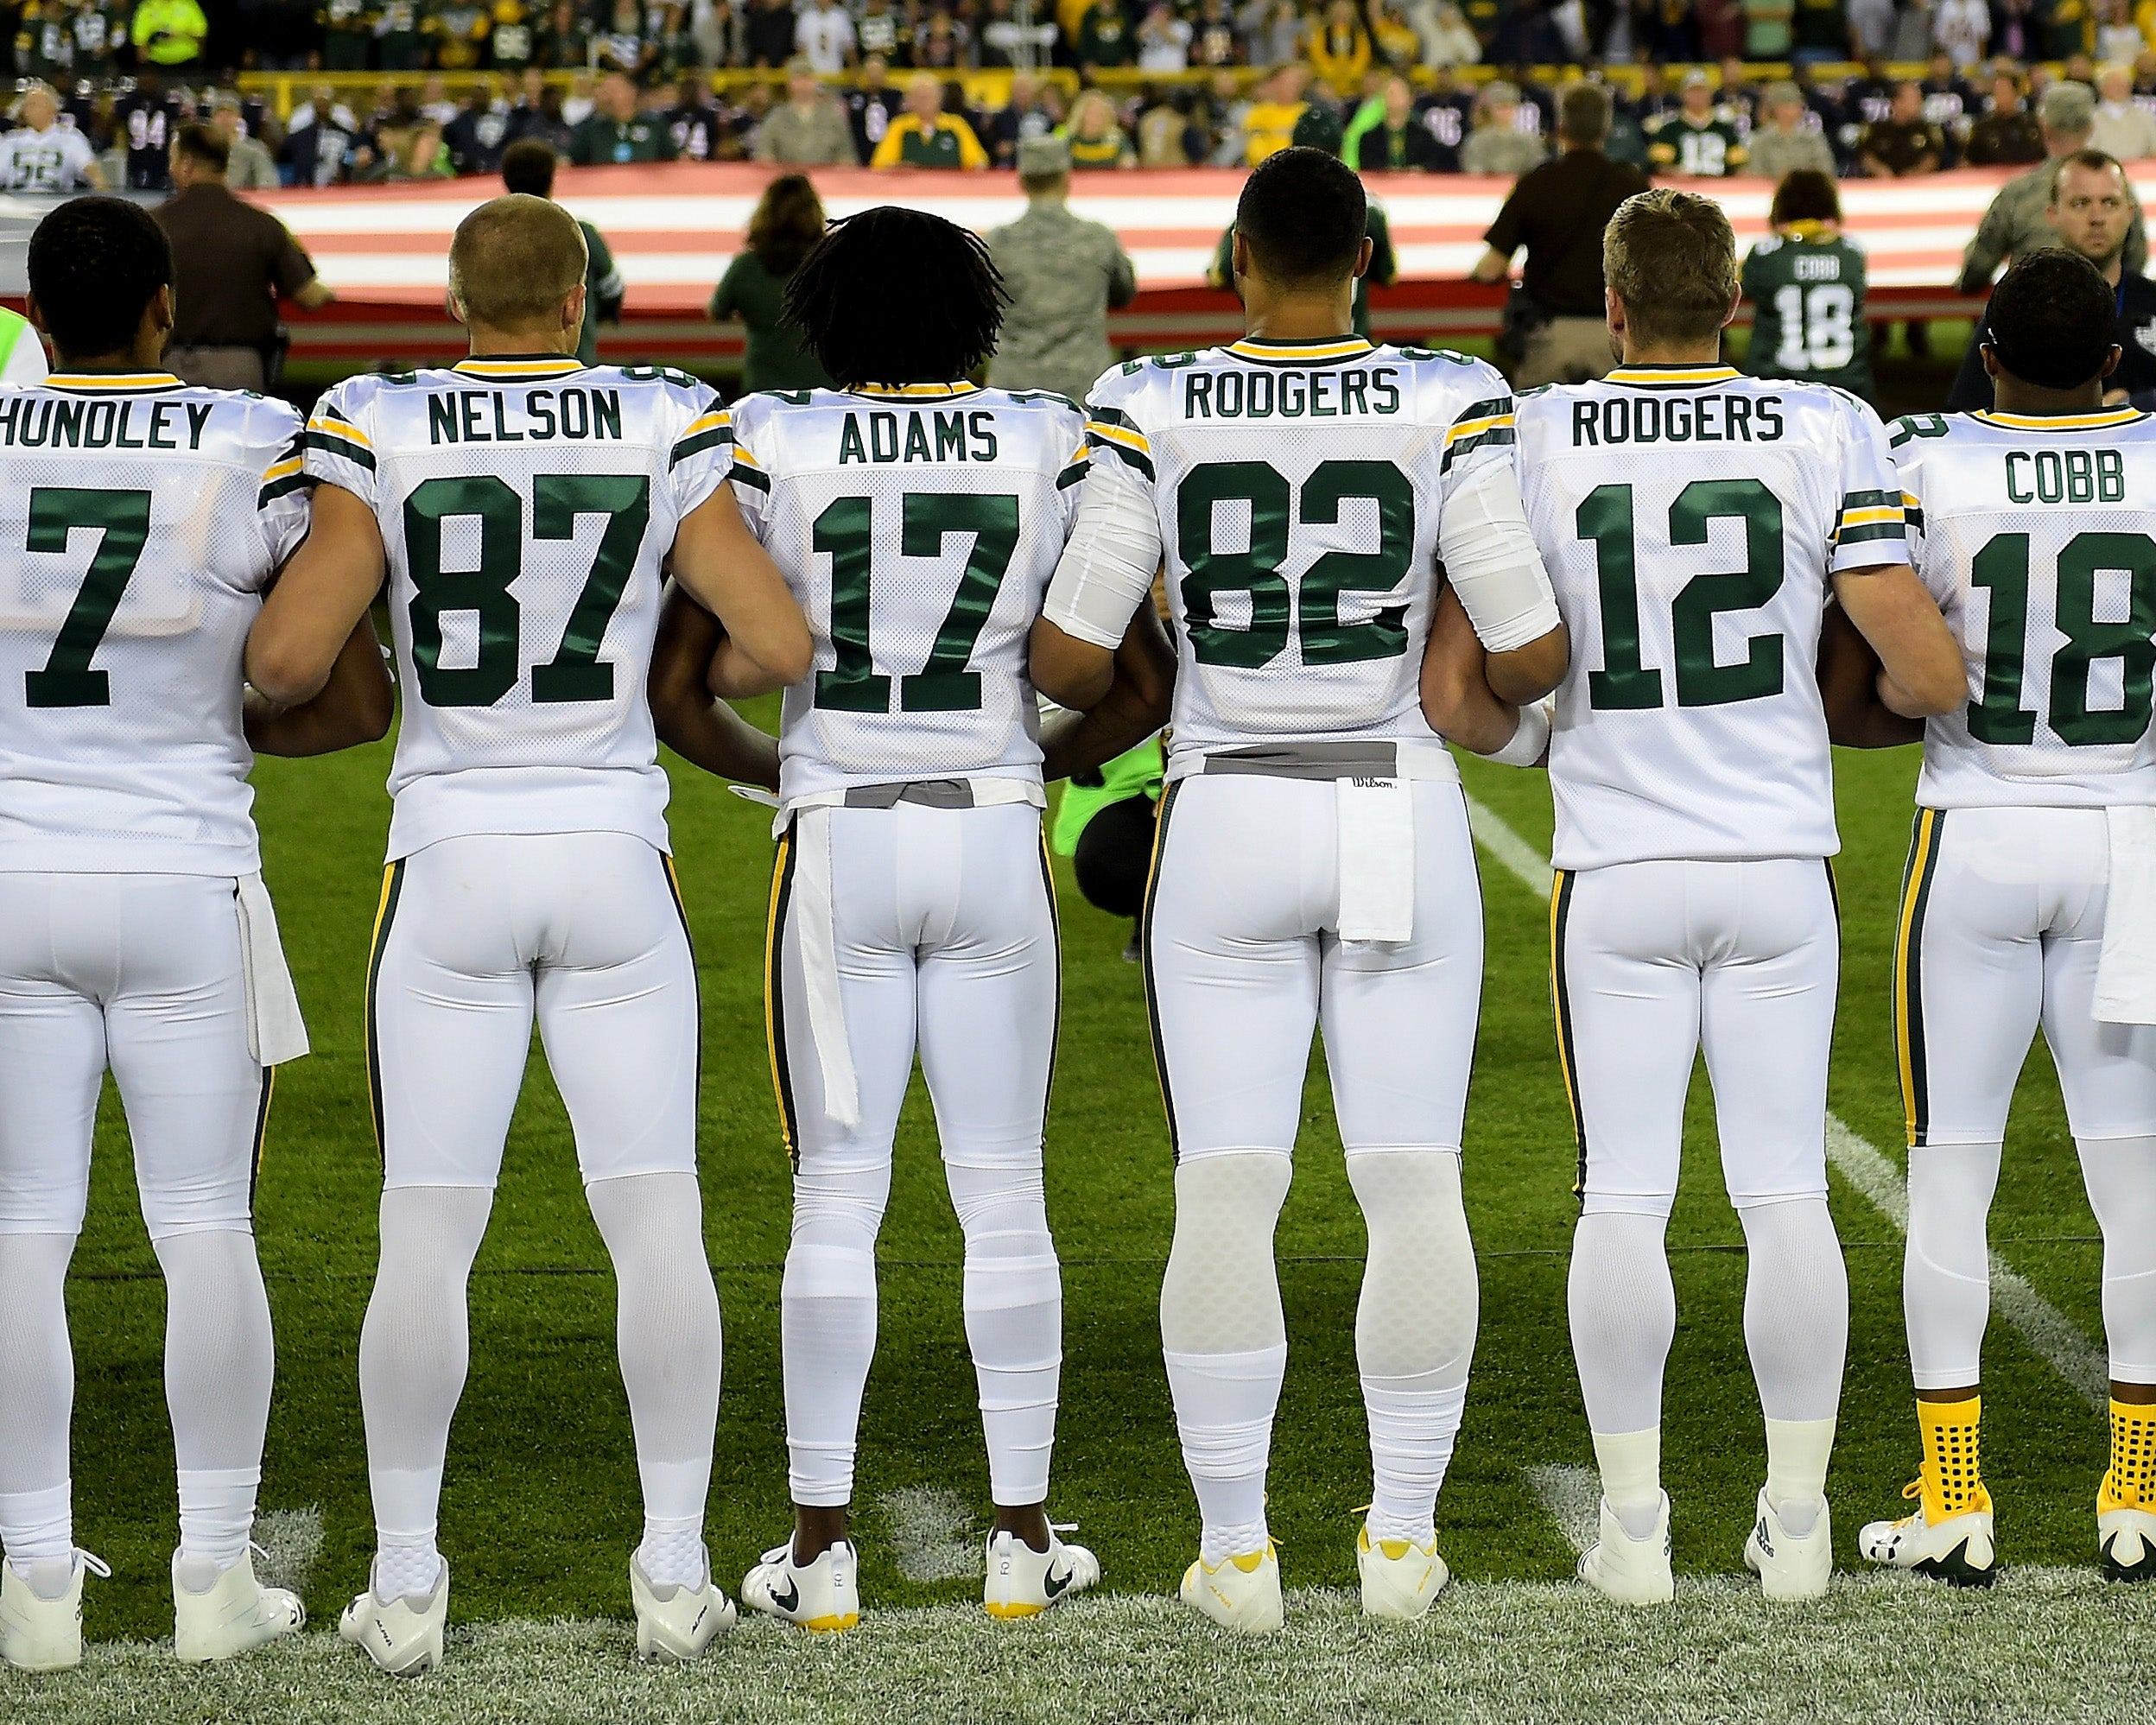 Green Bay Packers and Chicago Bears stand, link arms and refuse to kneel in protest amid Donald Trump criticism